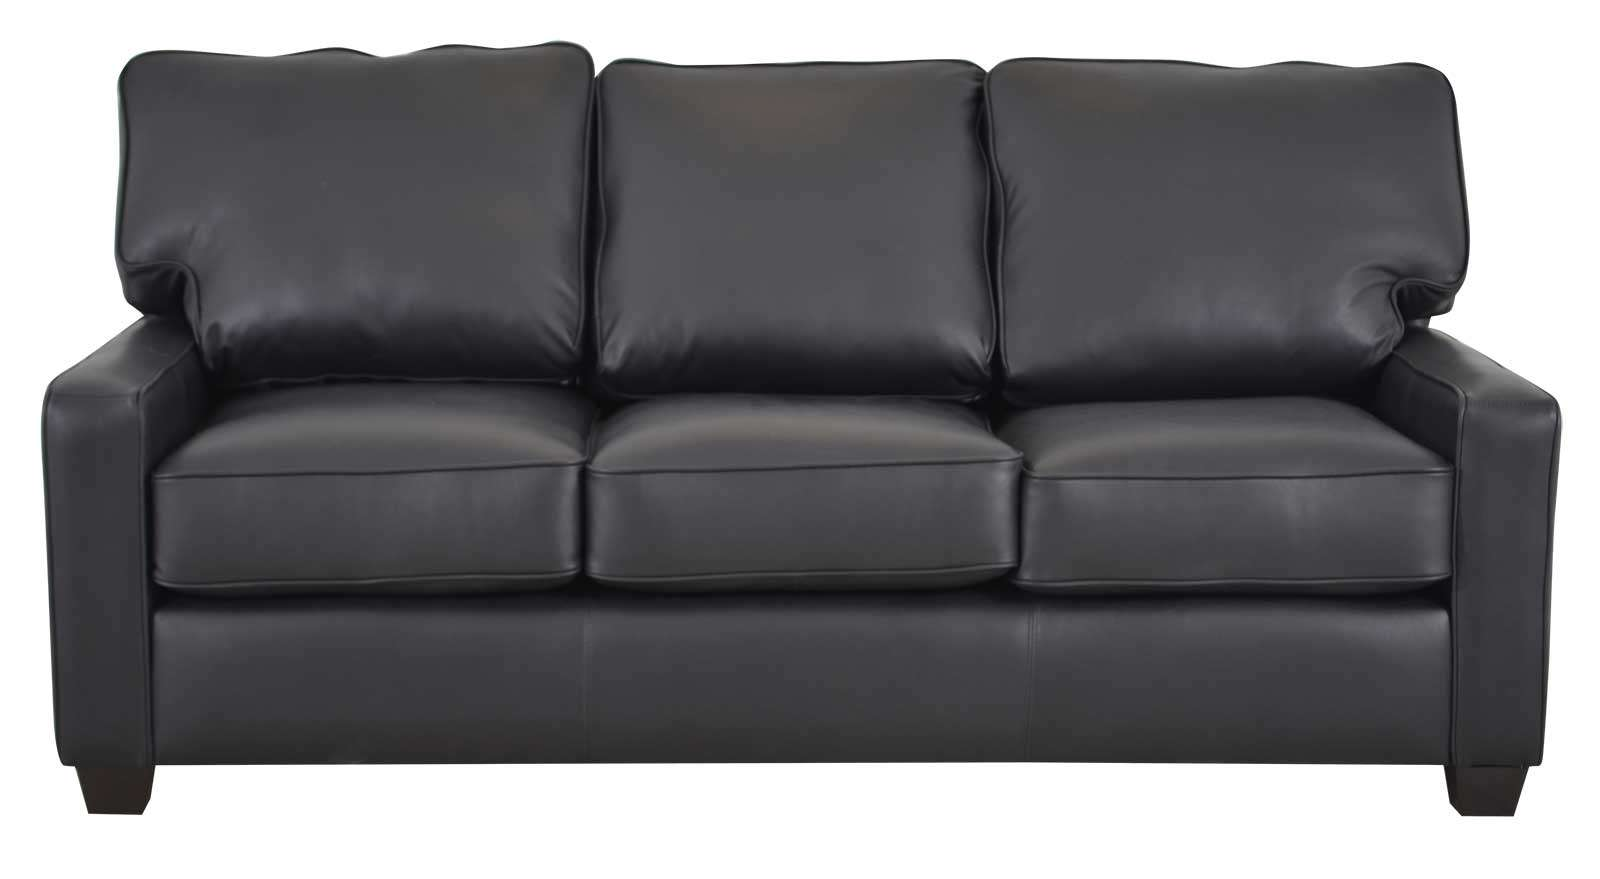 Due North Chairs Leather Furniture For Small Spaces The Leather Sofa Company